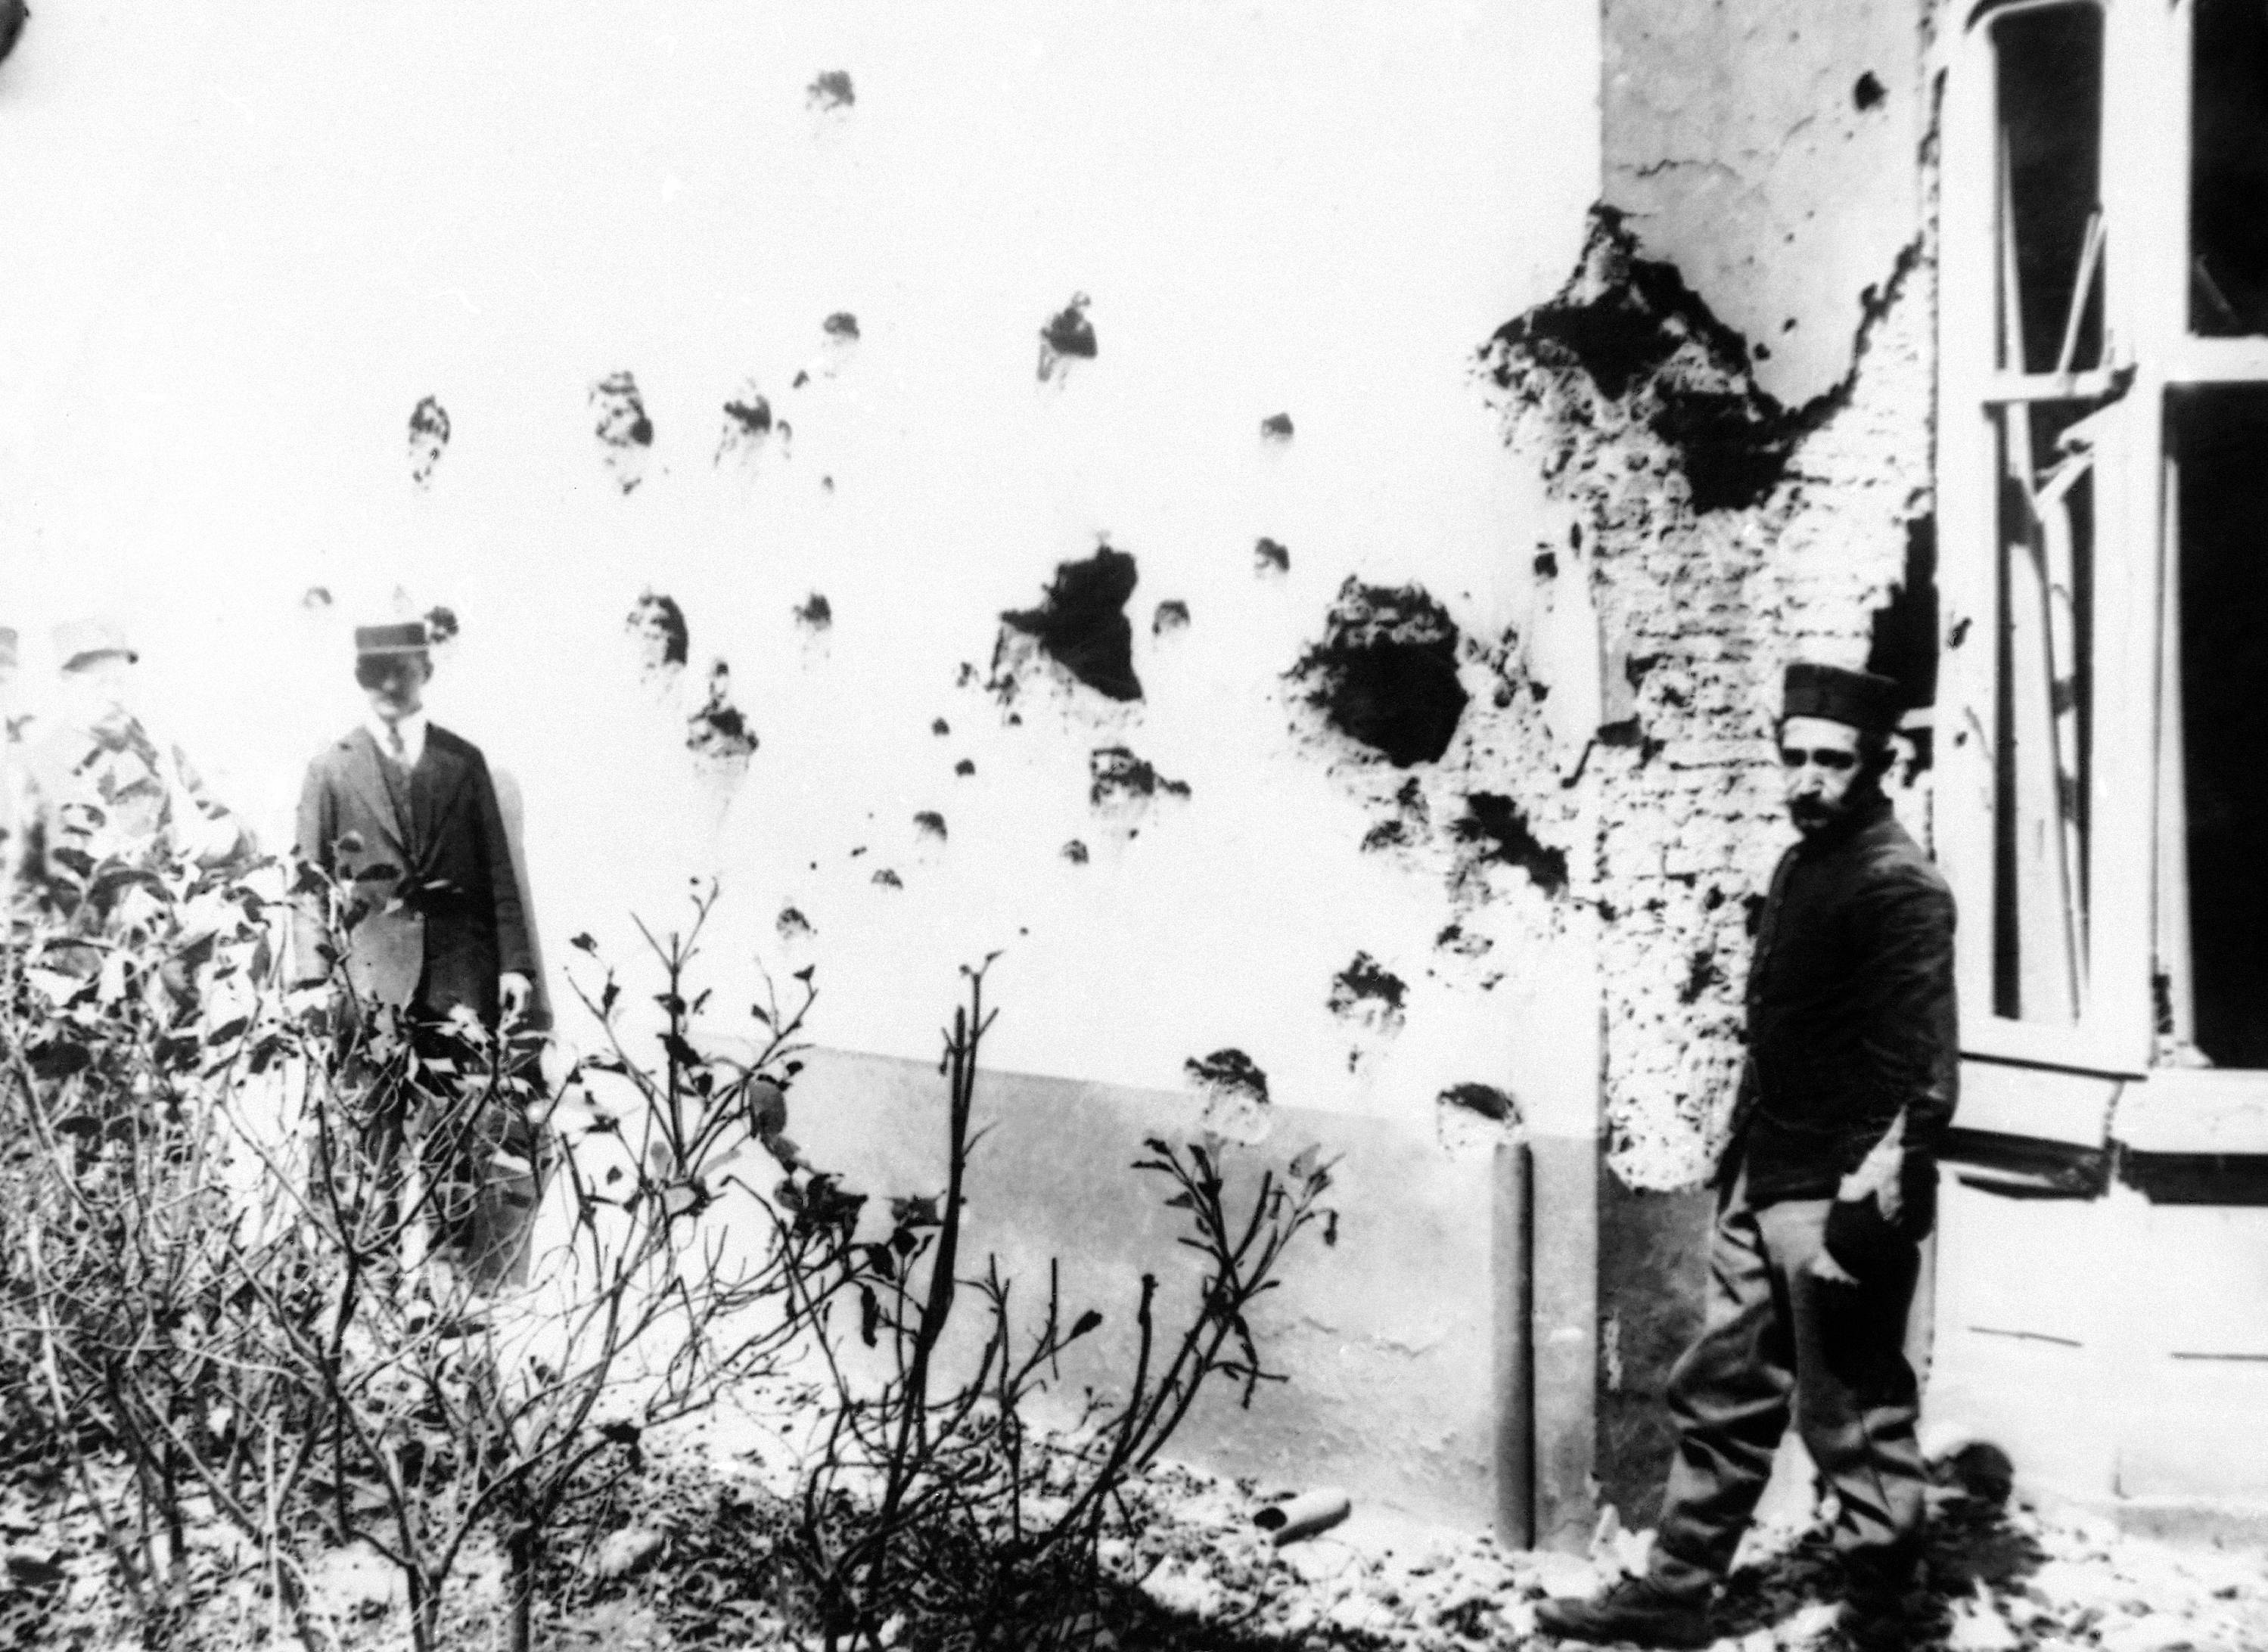 12 OF 100: In this 1914 file photo, a man stands next to a building damaged by shrapnel from bombs dropped from a Zeppelin in Antwerp, Belgium. Antwerp was damaged heavily during World War I.